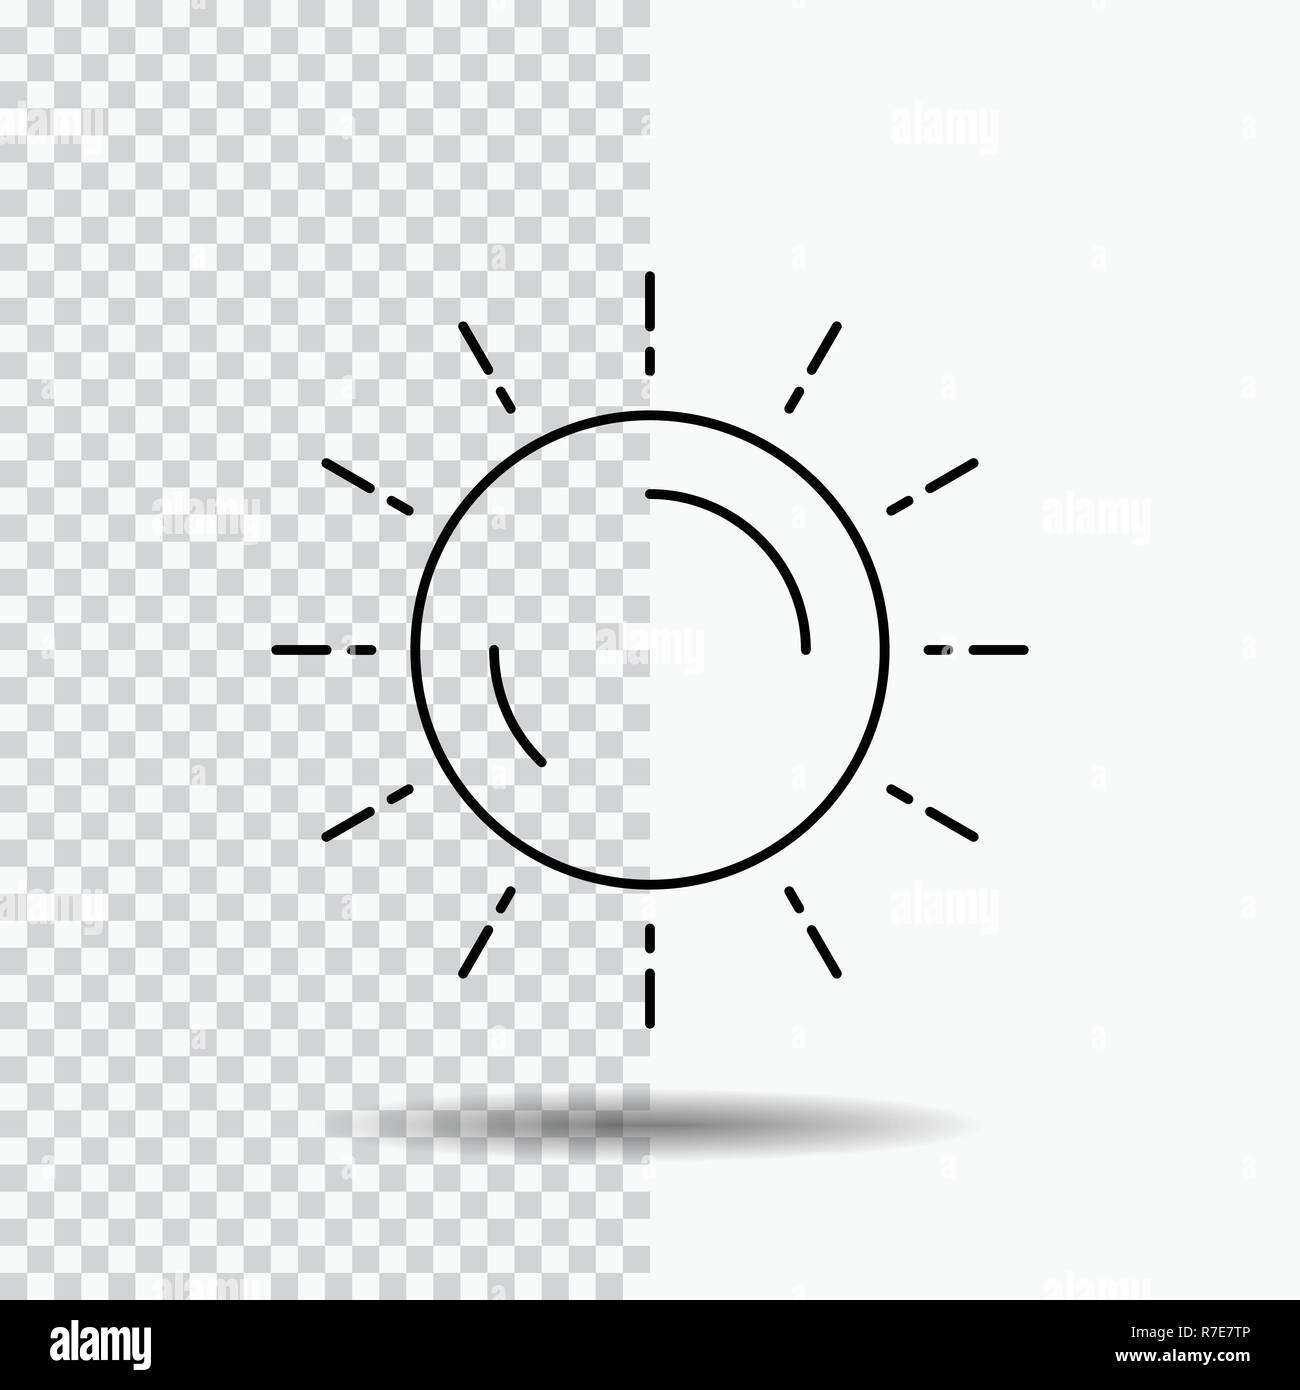 sun weather sunset sunrise summer line icon on transparent background black icon vector illustration stock vector image art alamy https www alamy com sun weather sunset sunrise summer line icon on transparent background black icon vector illustration image228350886 html